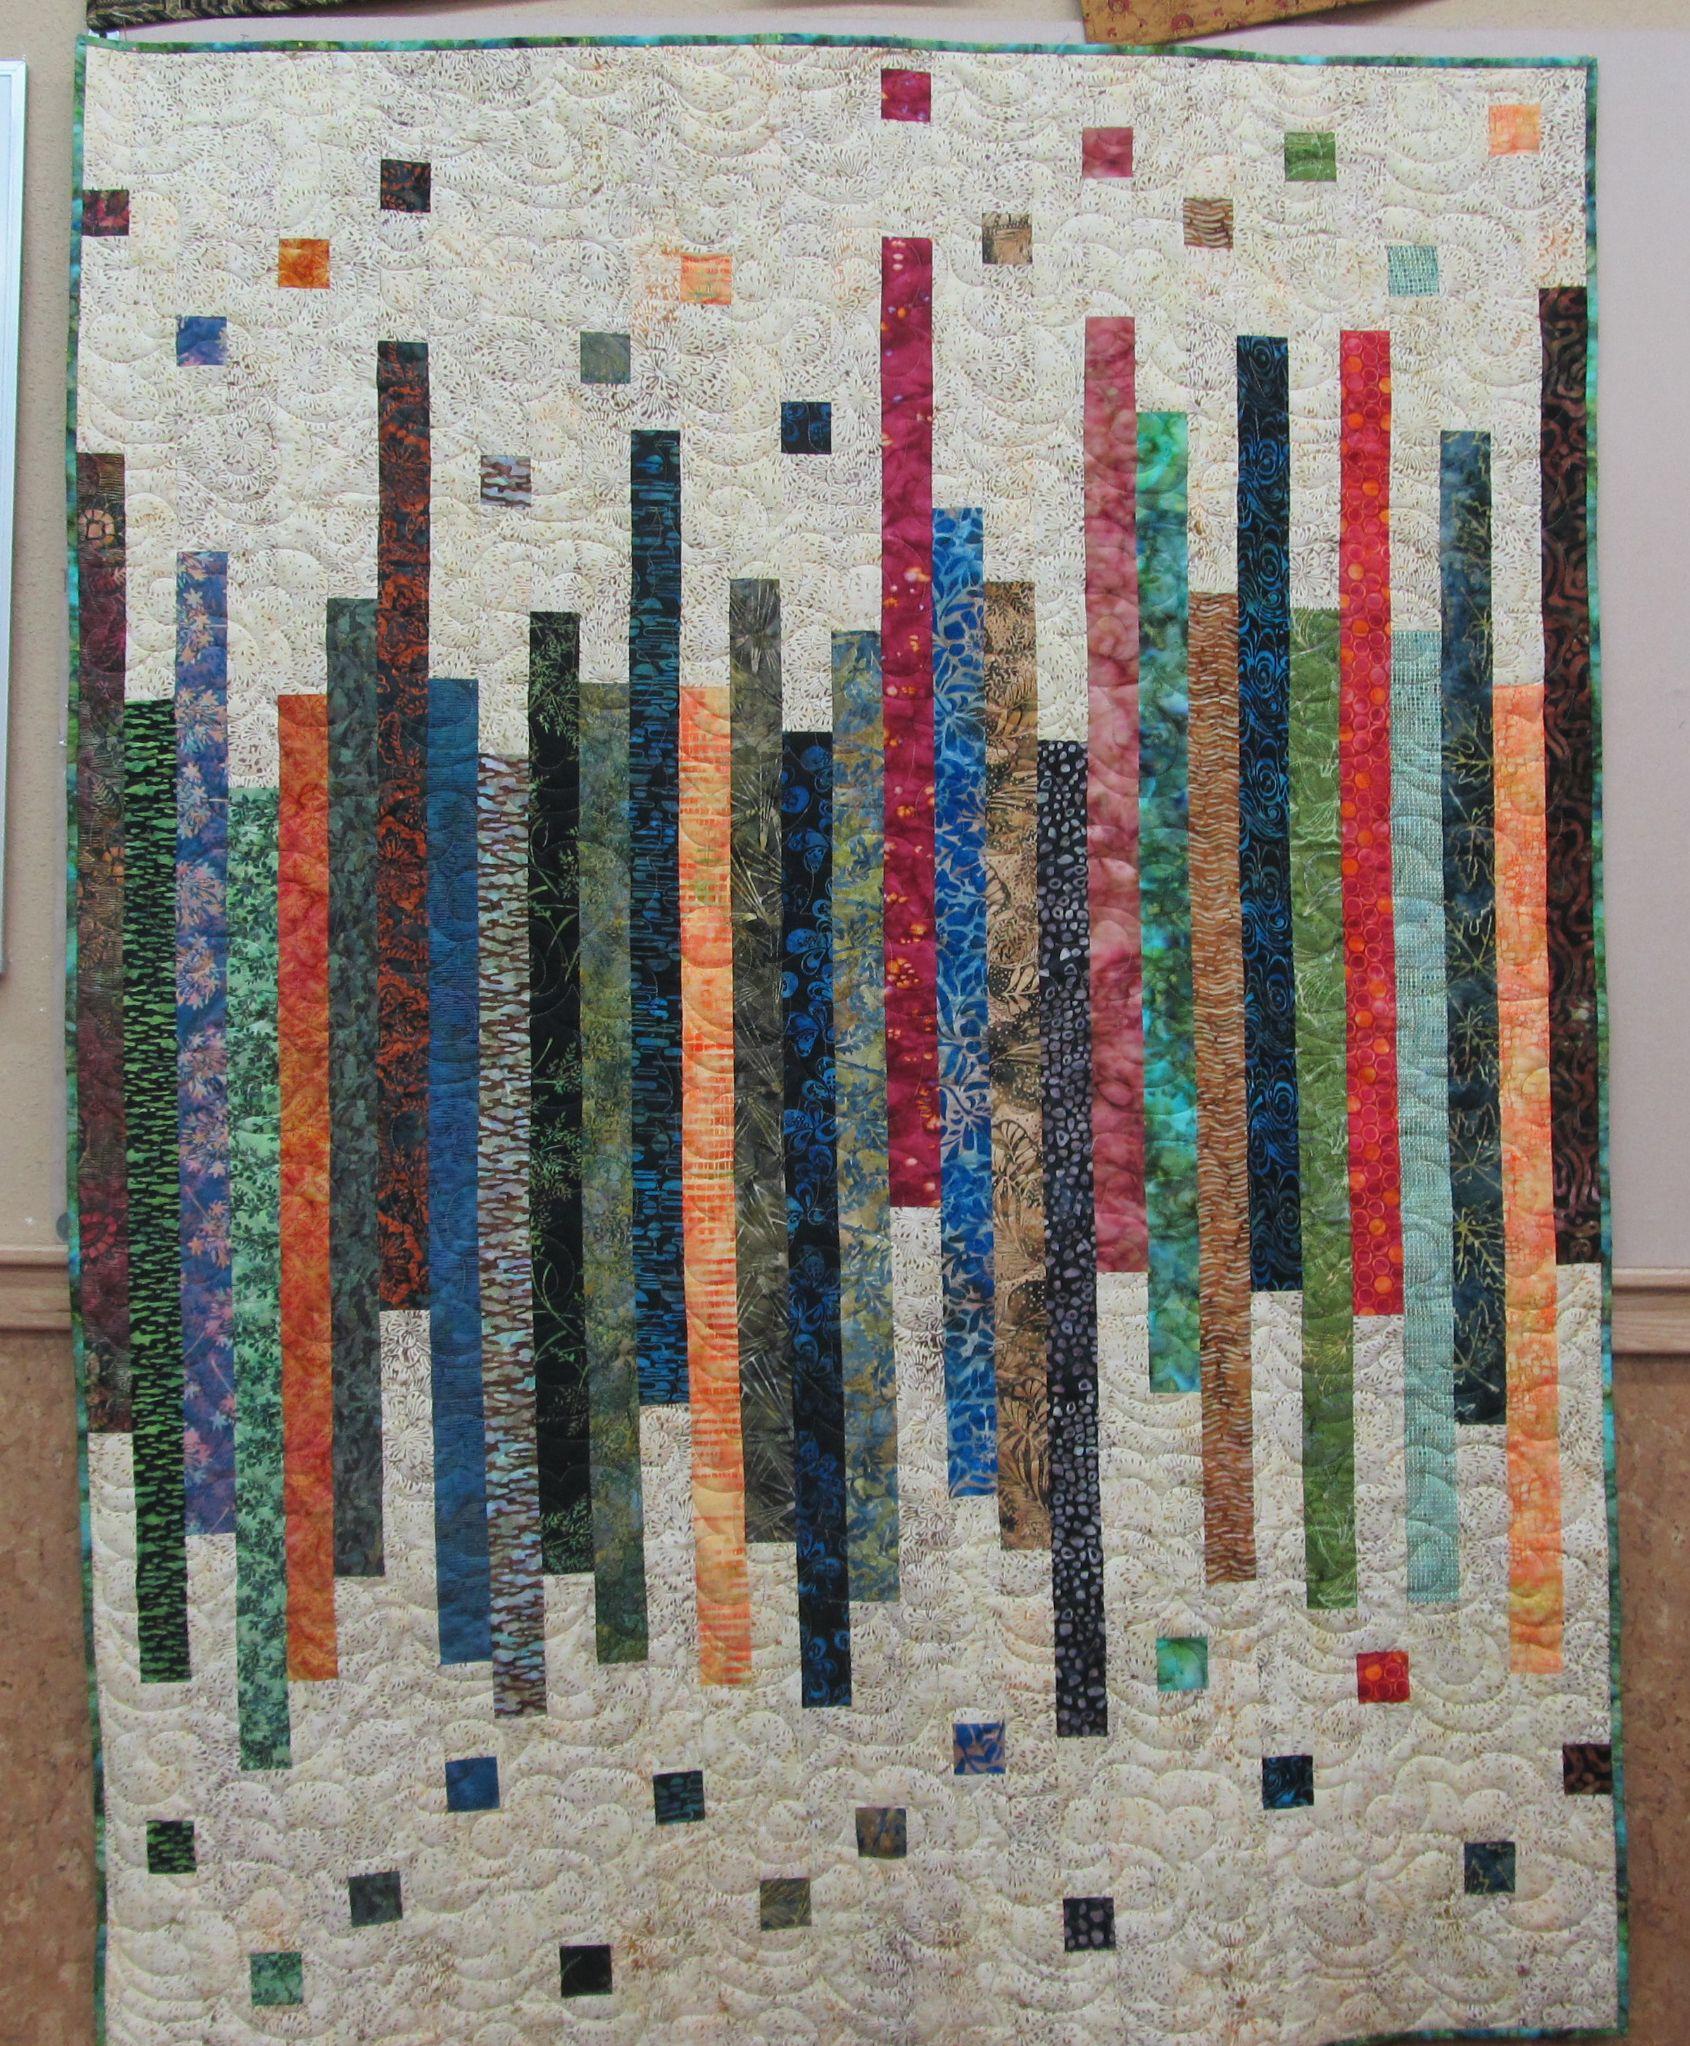 Strip Quilt Done With Batik Fabrics.